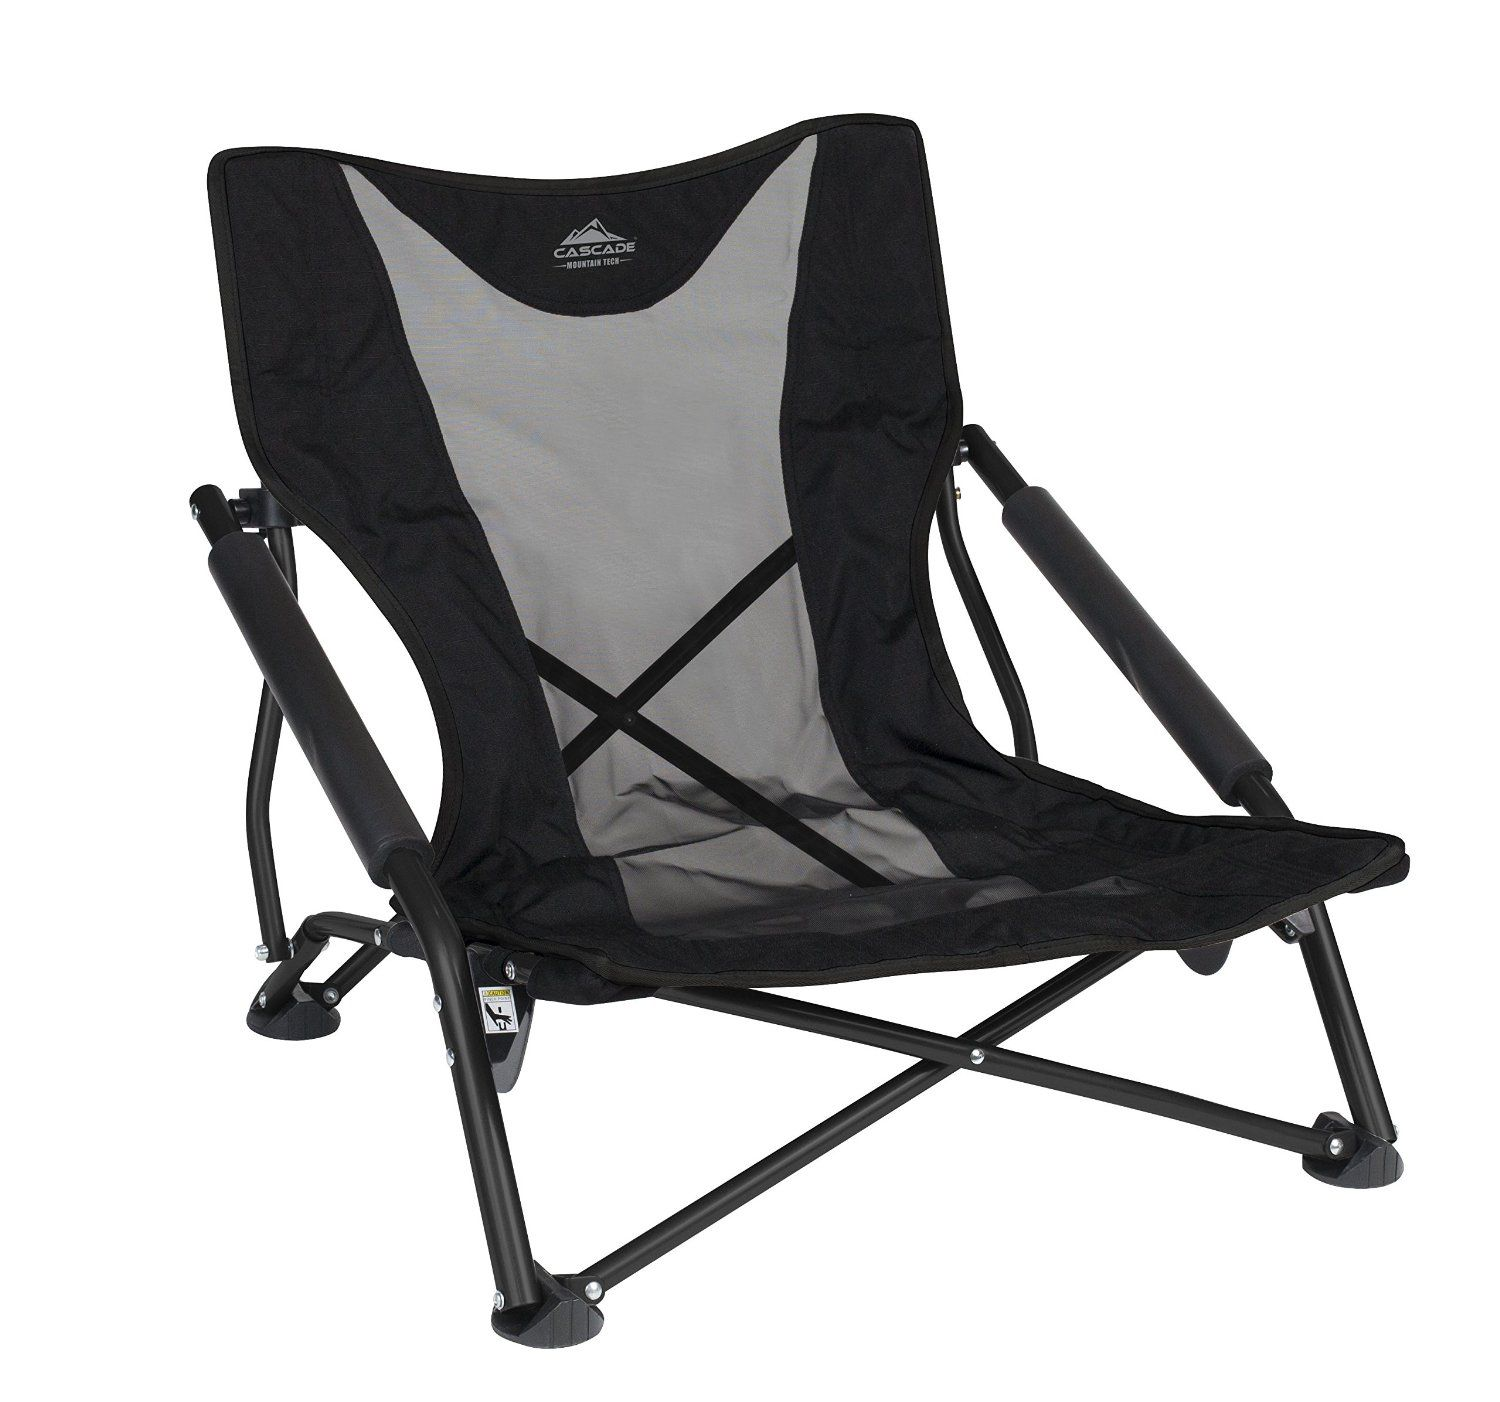 Lightweight camping chairs - Find This Pin And More On Camping Furniture Outdoor Chair Cascade Mountain Tech Lightweight